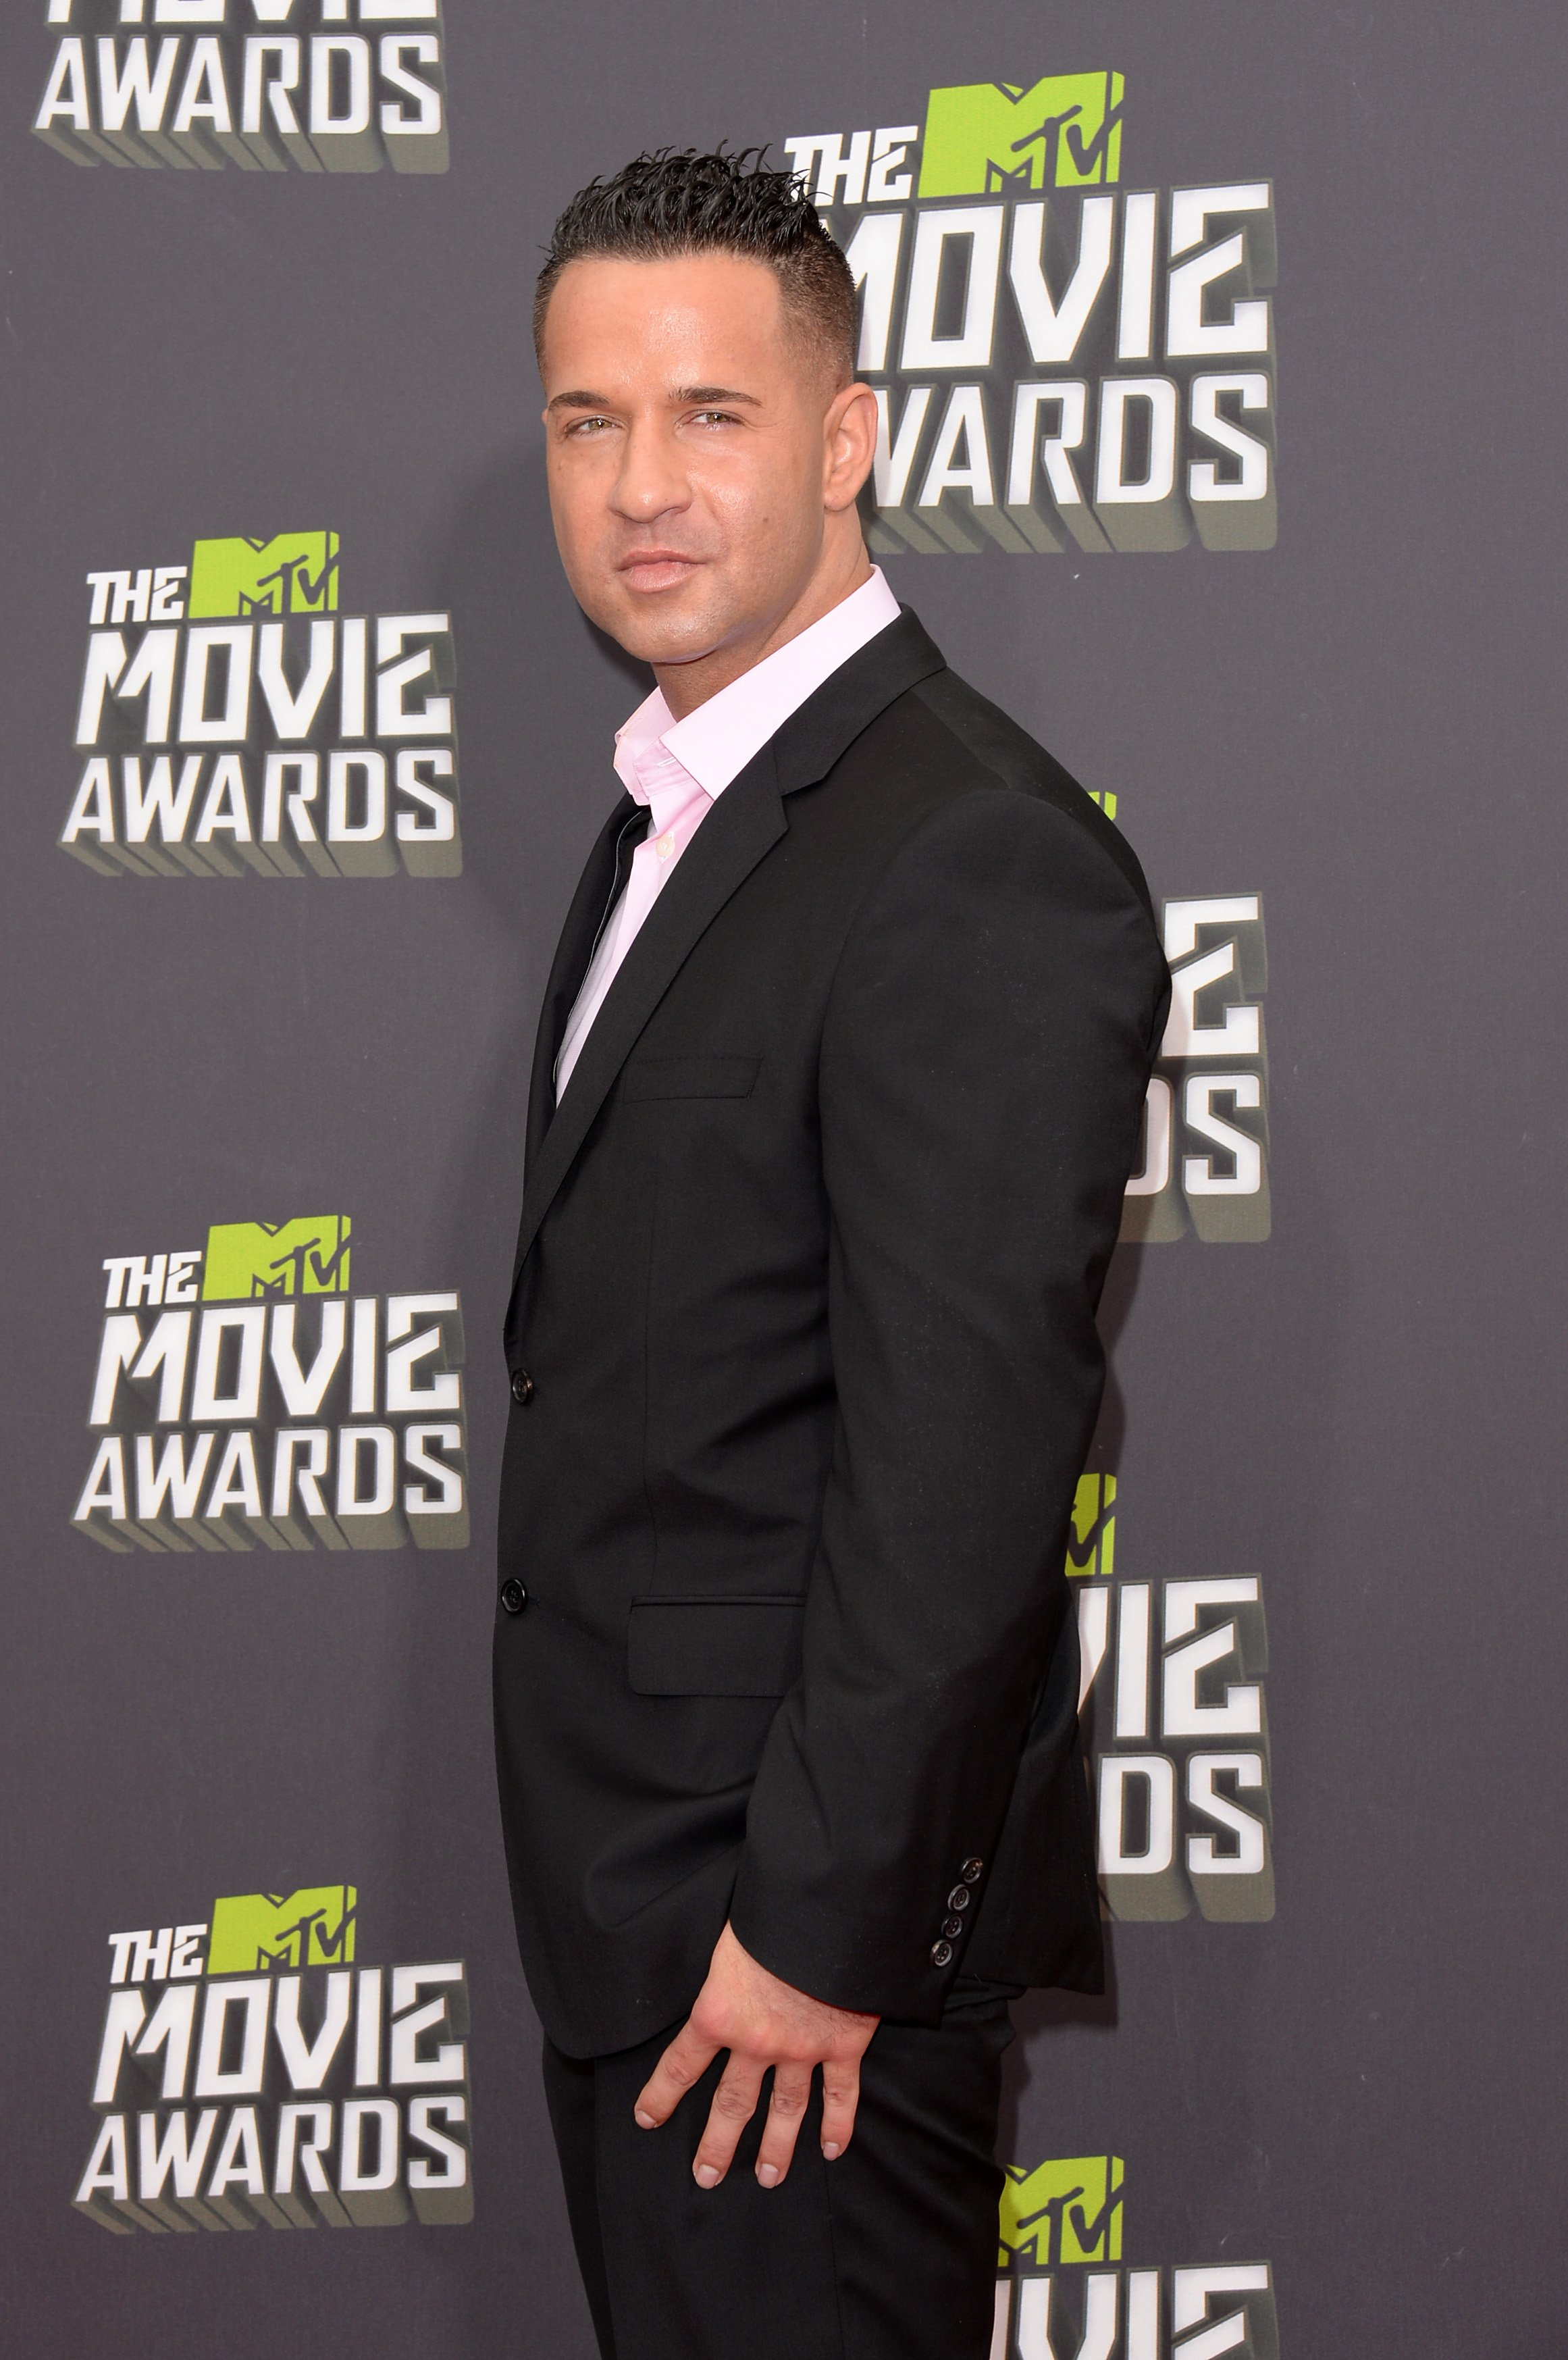 Mike 'The Situation' Sorrentino arrives at the 2013 MTV Movie Awards at Sony Pictures Studios on April 14, 2013 in Culver City, Calif